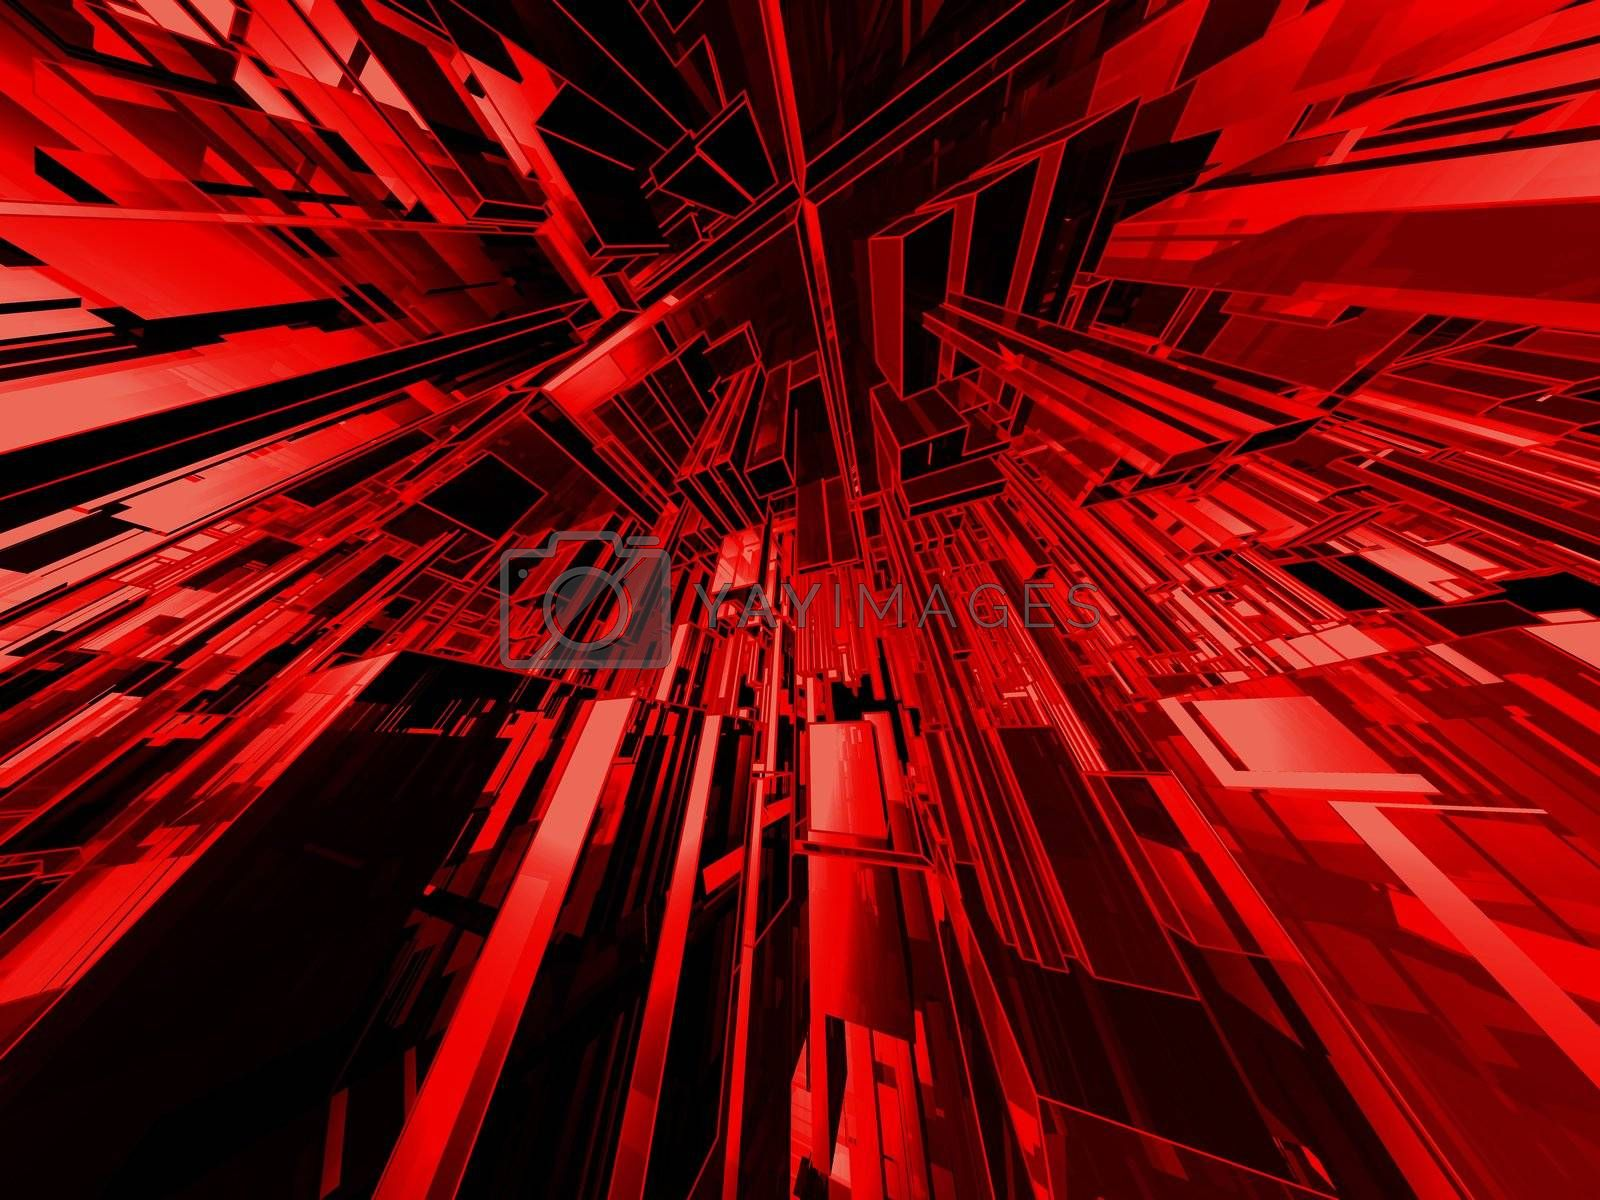 Abstract Design by 3pod